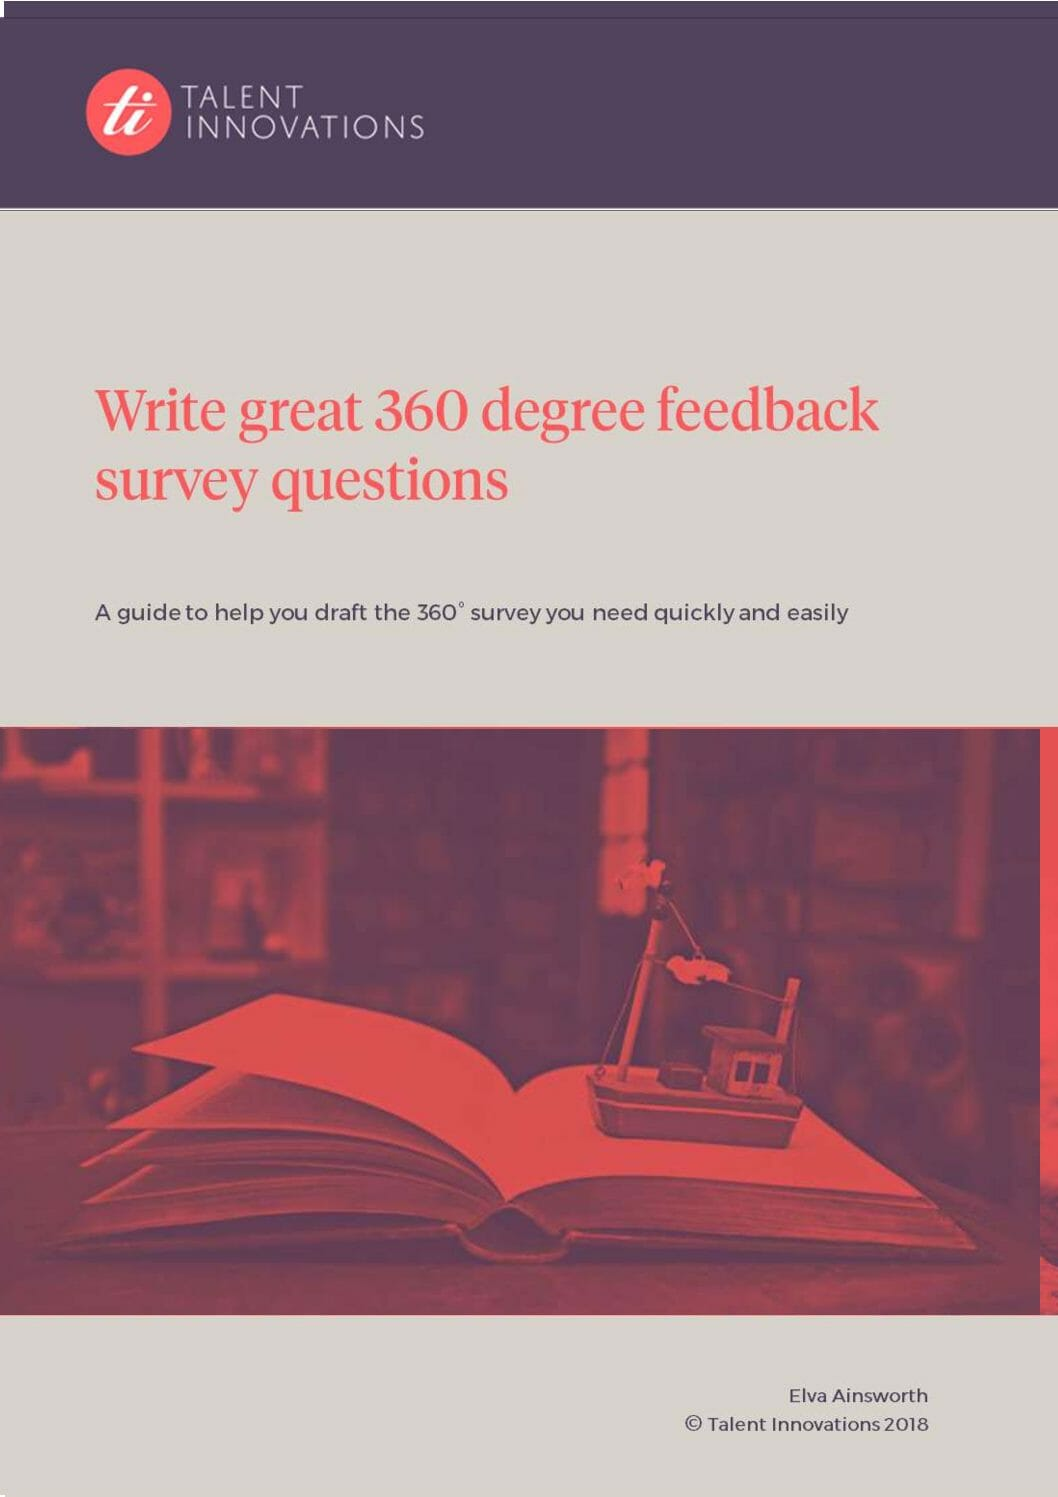 360 Guide 2 – Write great 360 degree feedback survey questions